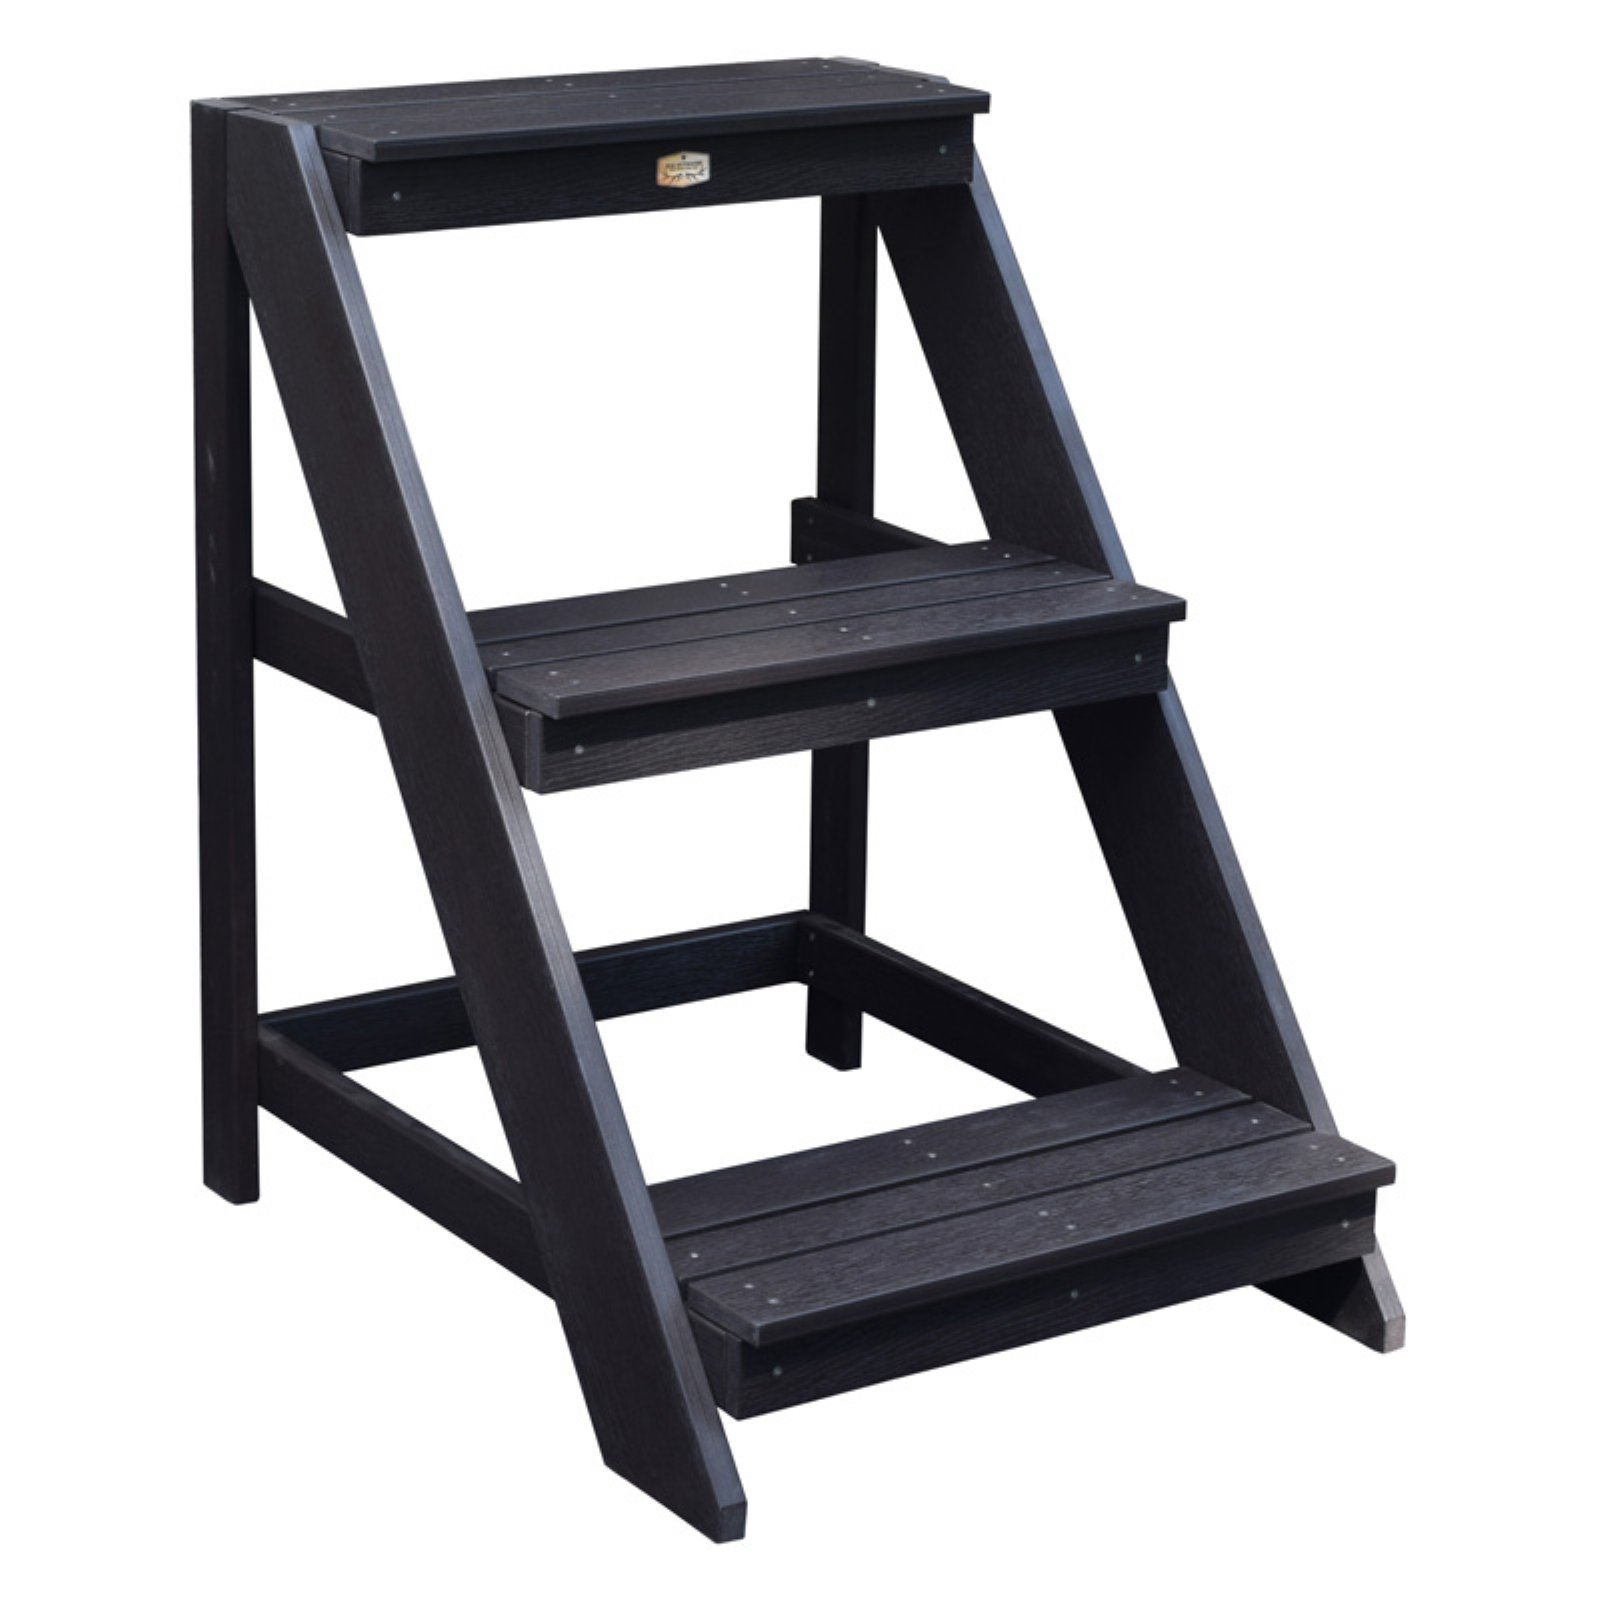 Phat Tommy Highwood Ladder Tiered Recycled Poly Indoor/Outdoor Plant Stand